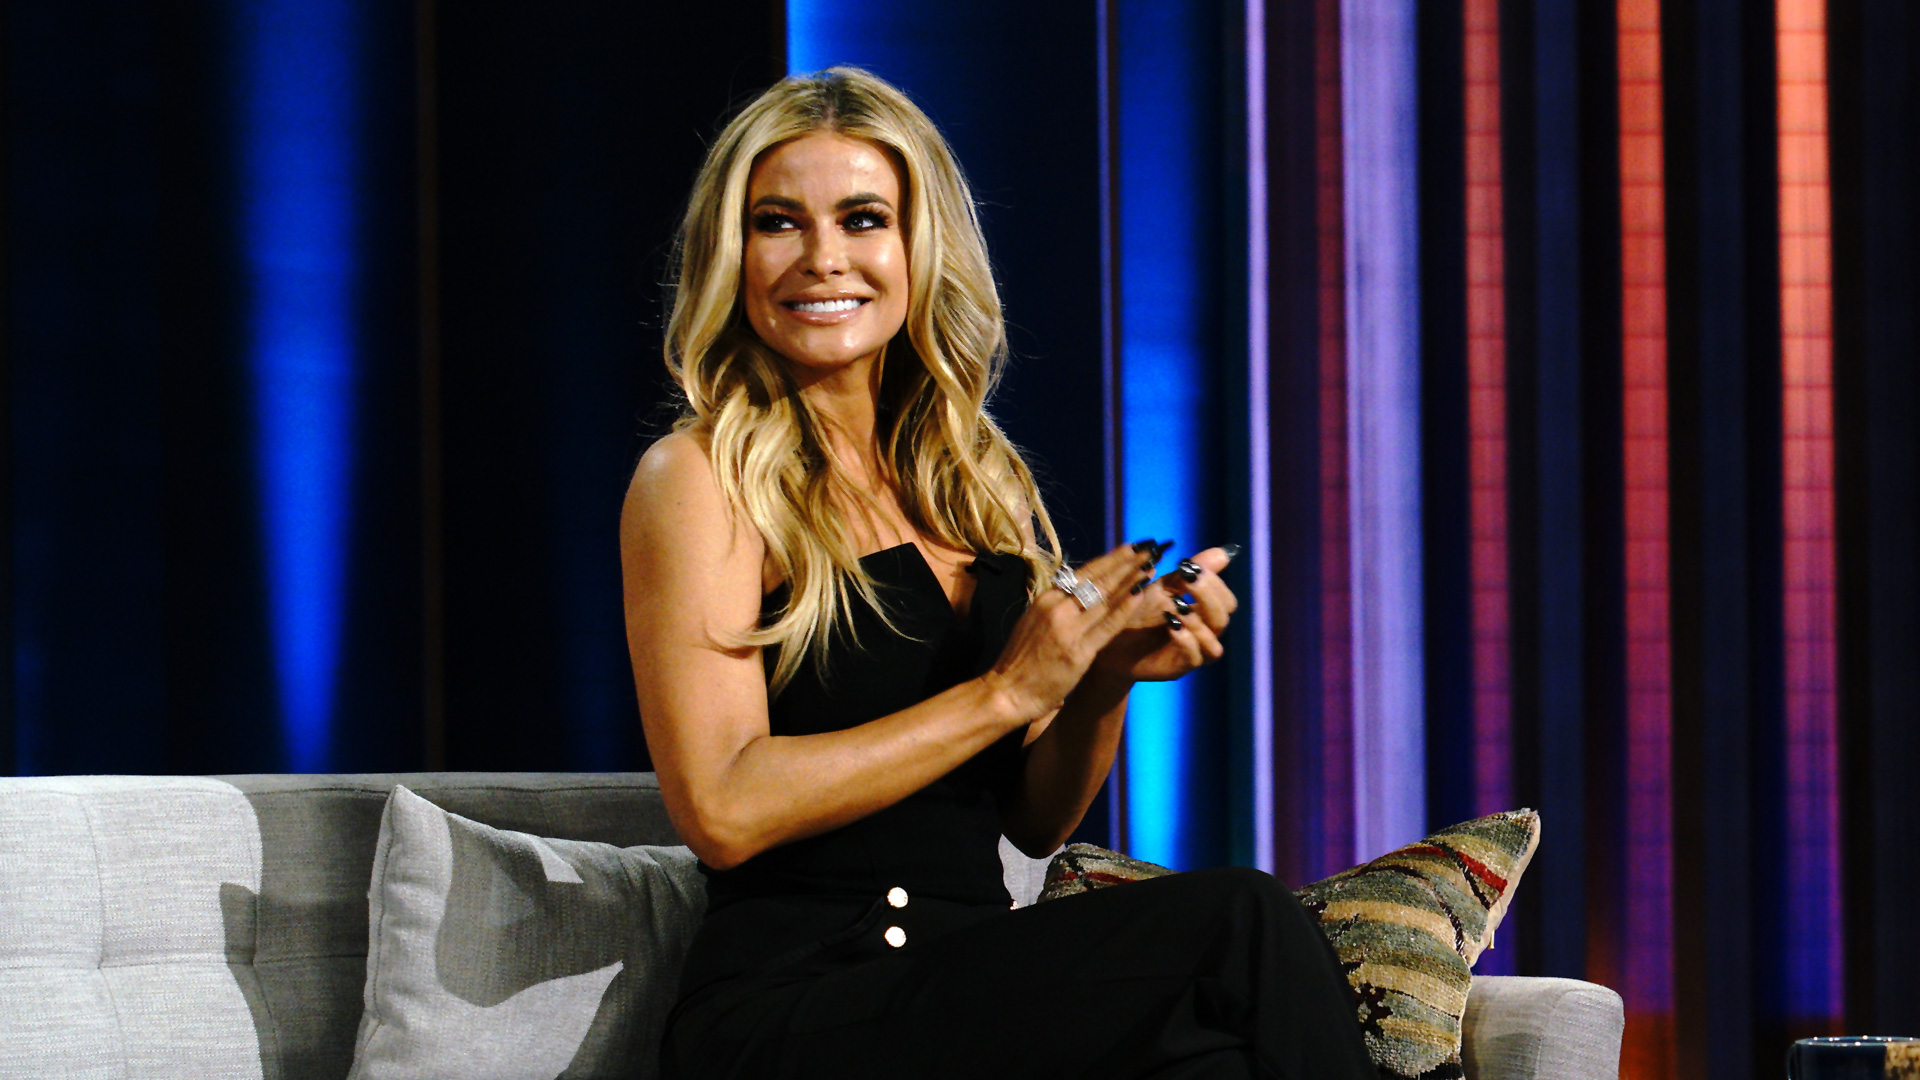 Carmen Electra On TV - Carmen Electra On TV